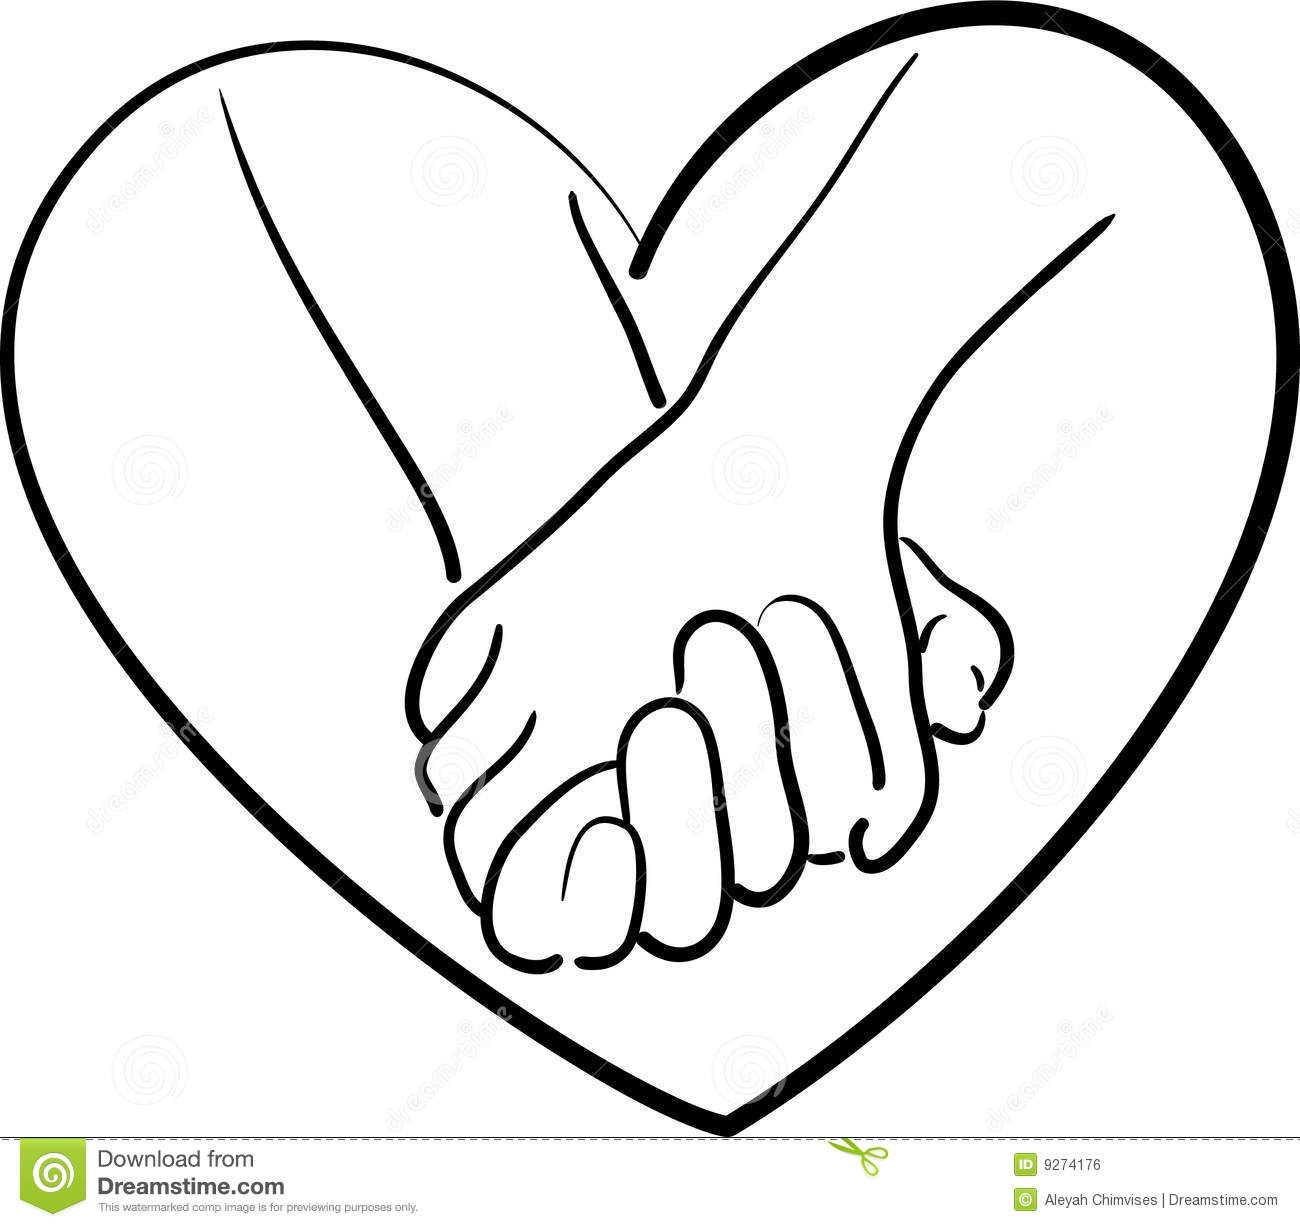 Holding Hands Clipart Black And White | Free download on ...